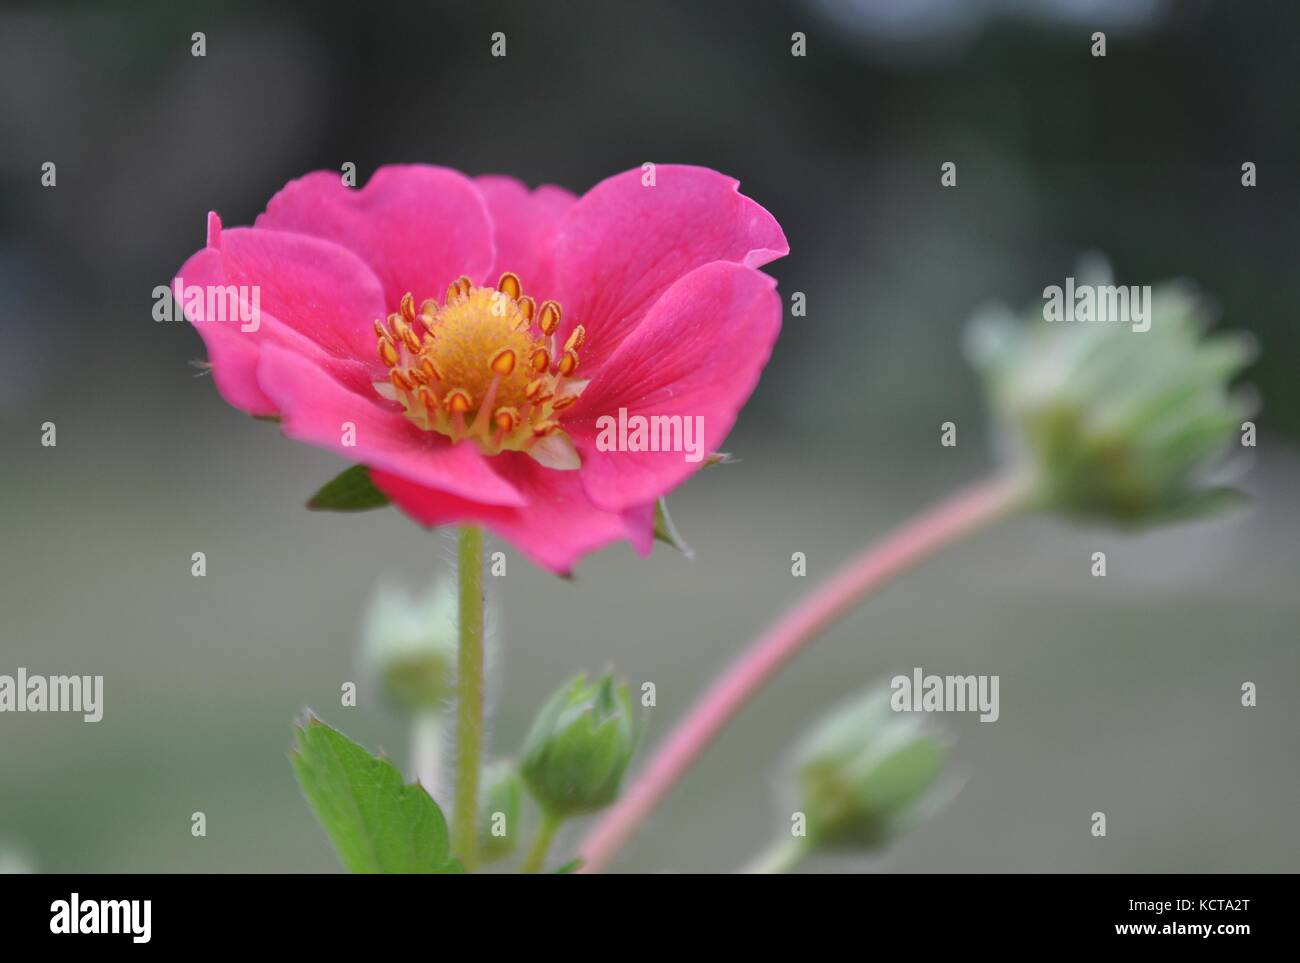 Blooming pink strawberry flower detail with copy space and blurred background. - Stock Image